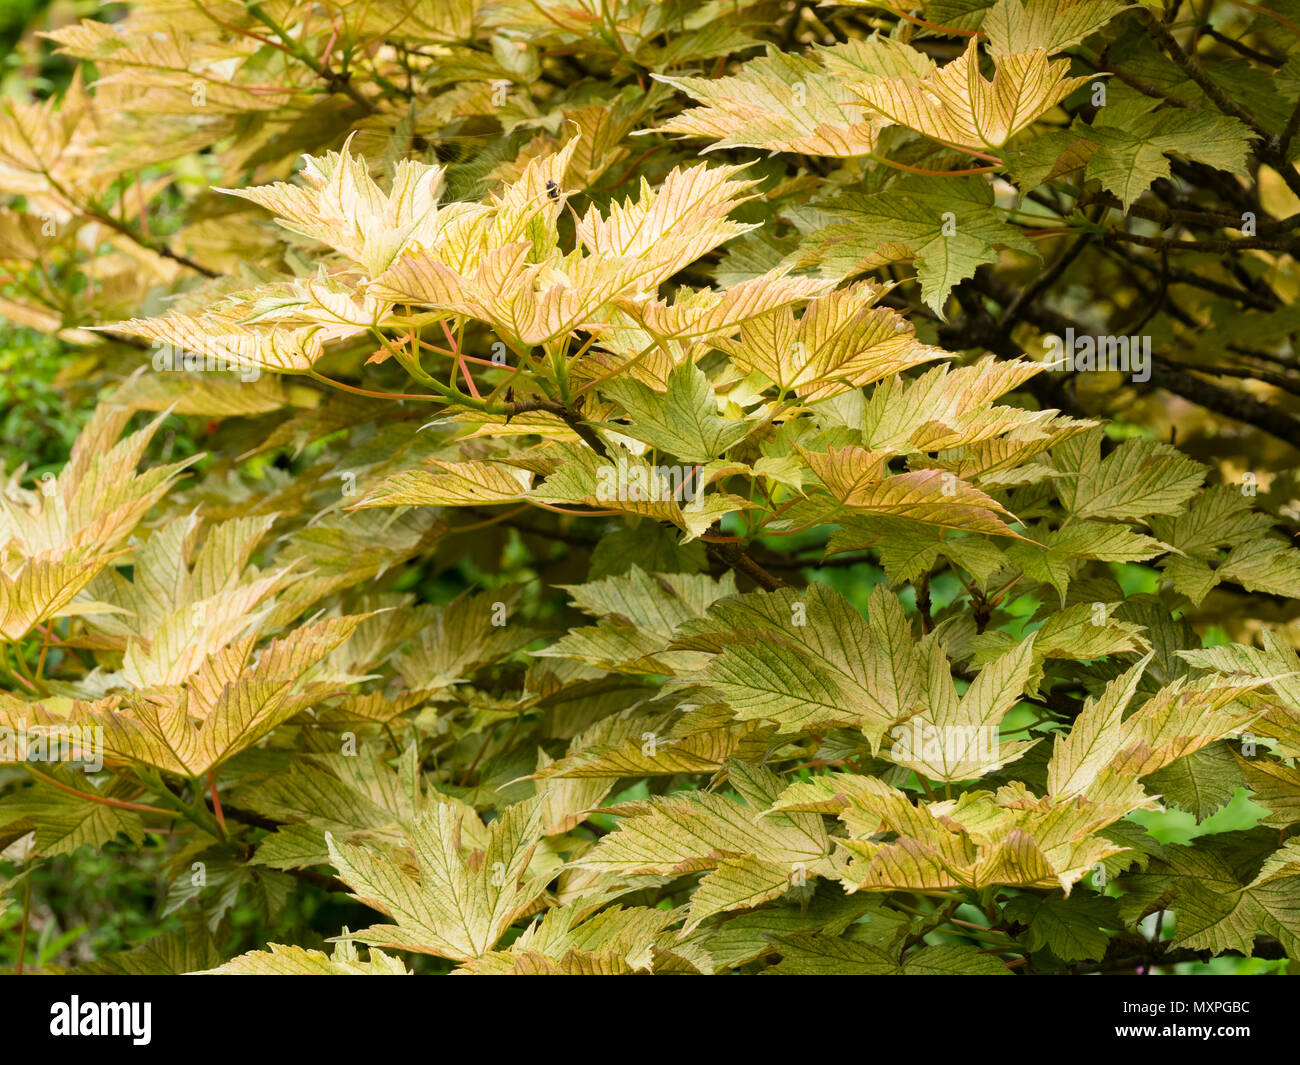 Bronzed And Mottled Foliage Of The Deciduous Tree Acer